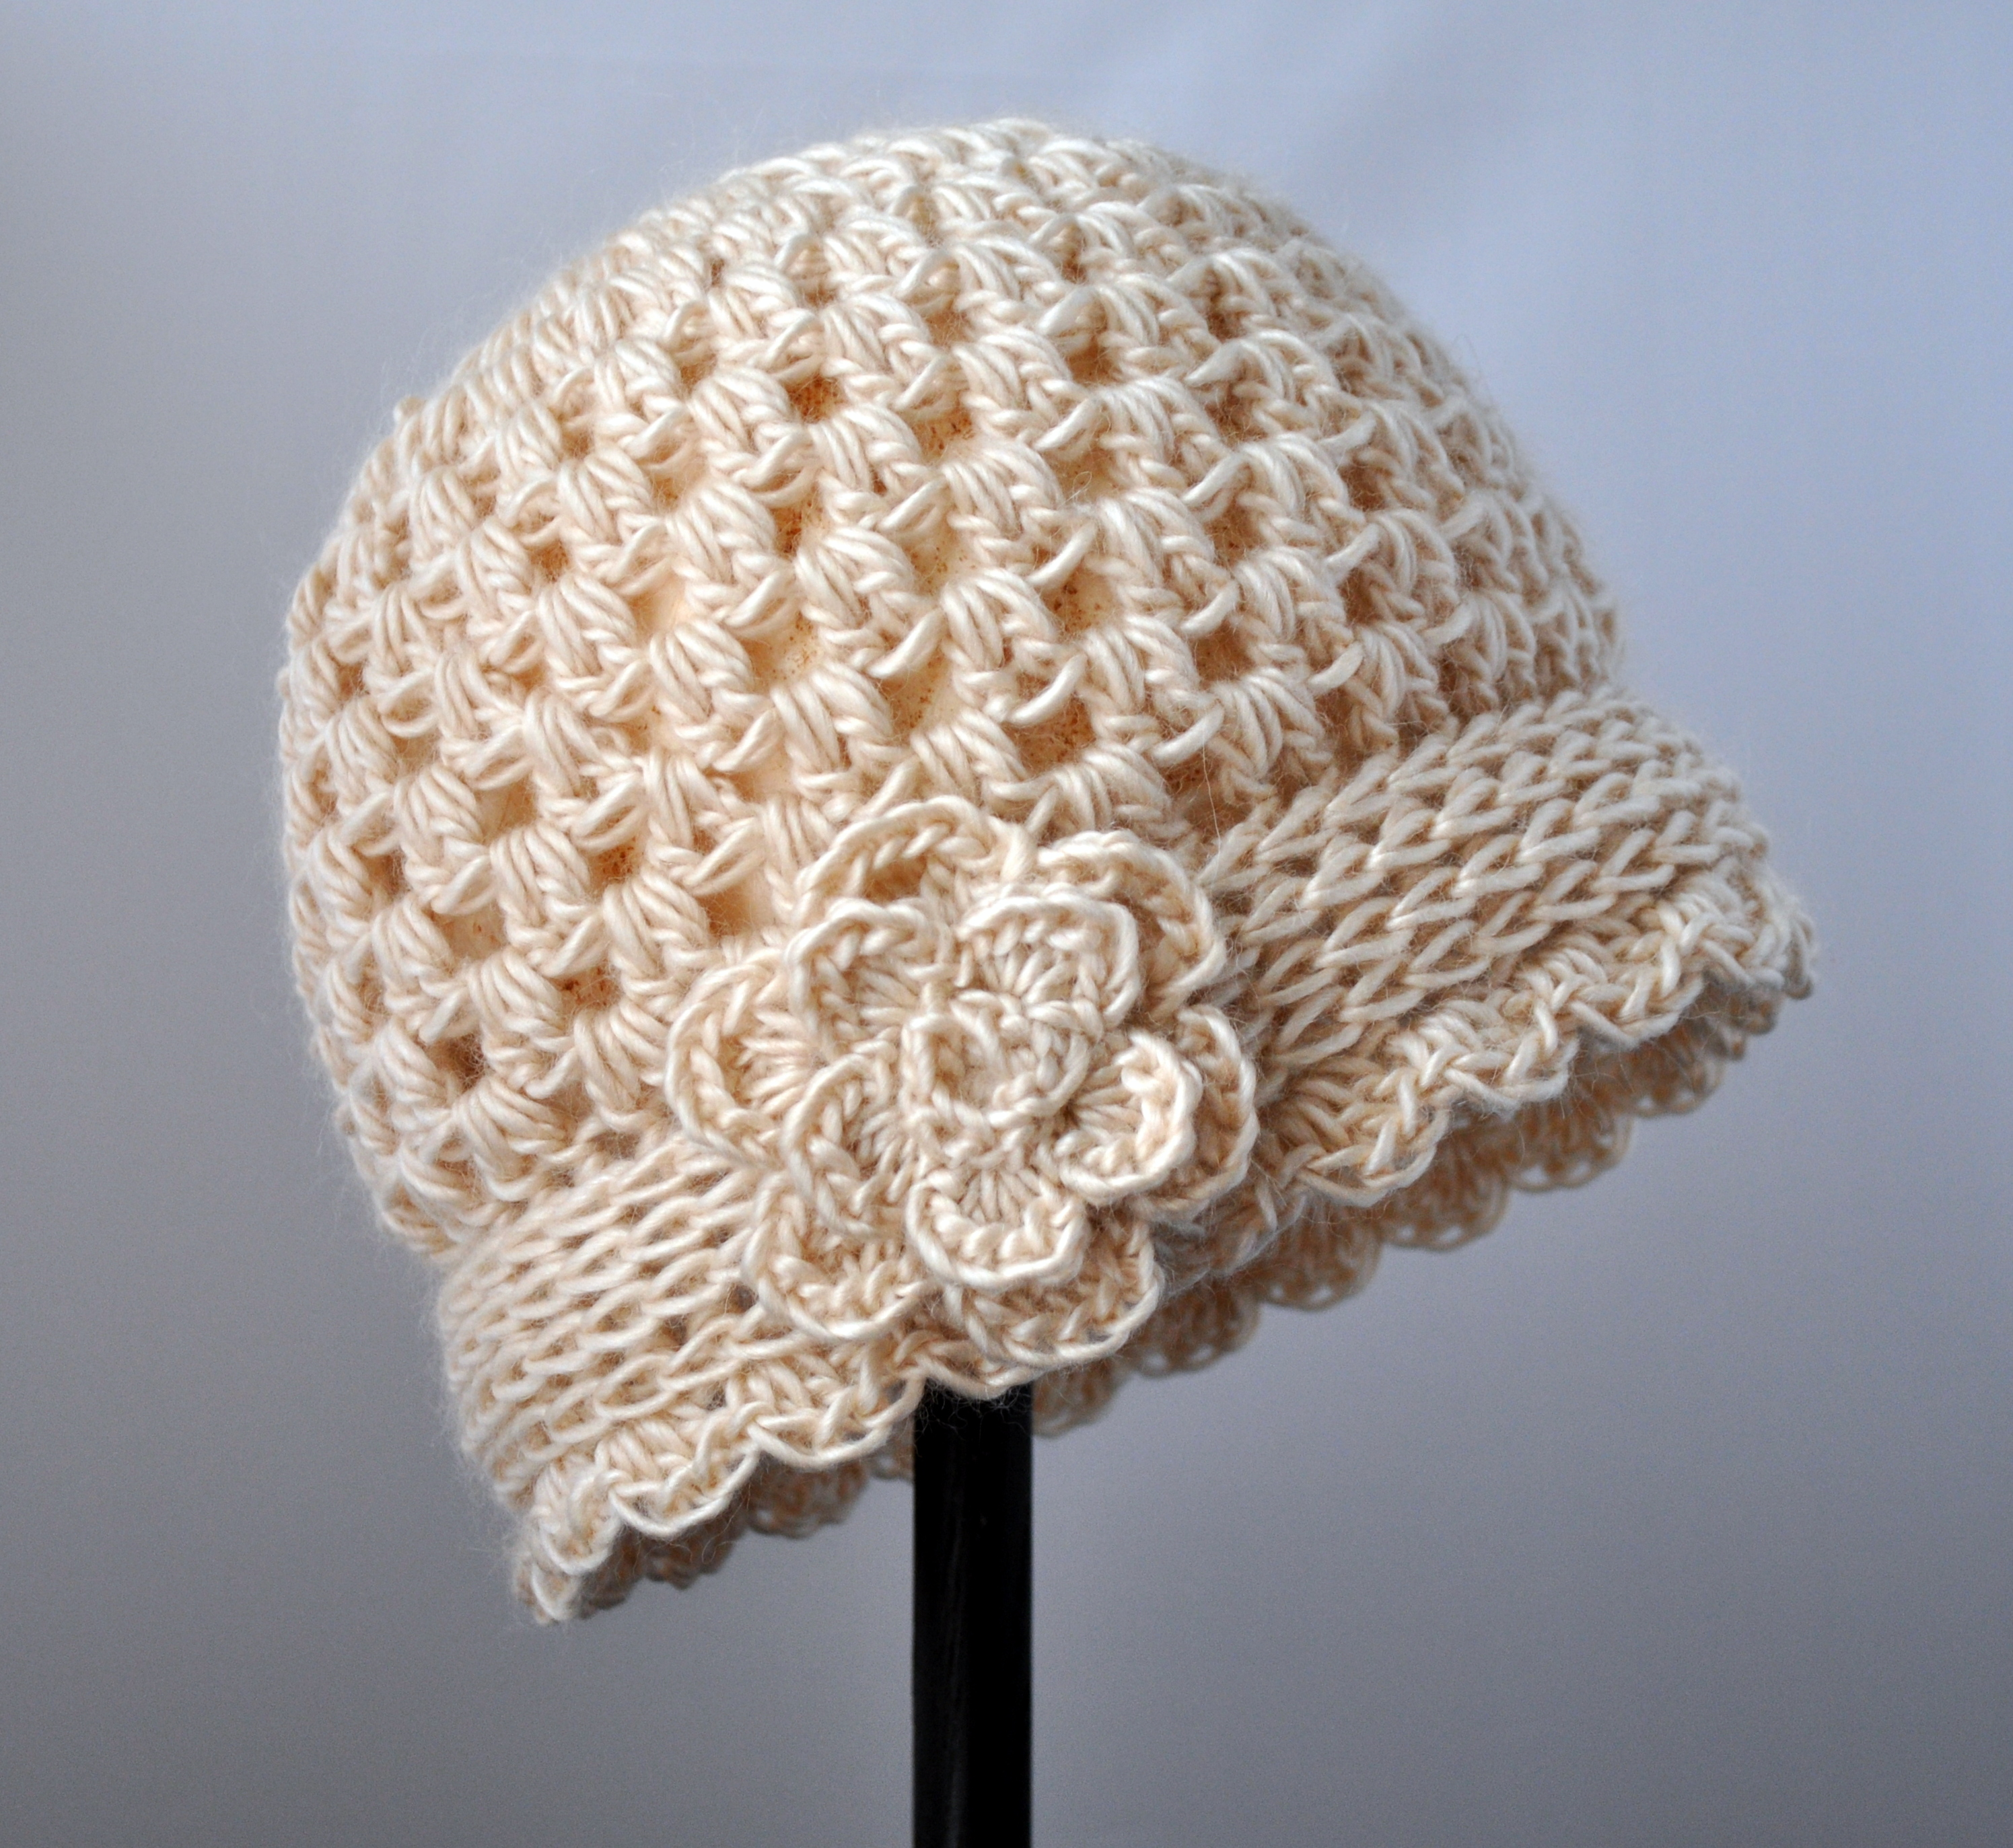 Crochet Crochet Crochet : Crochet Patterns Classy Crochet